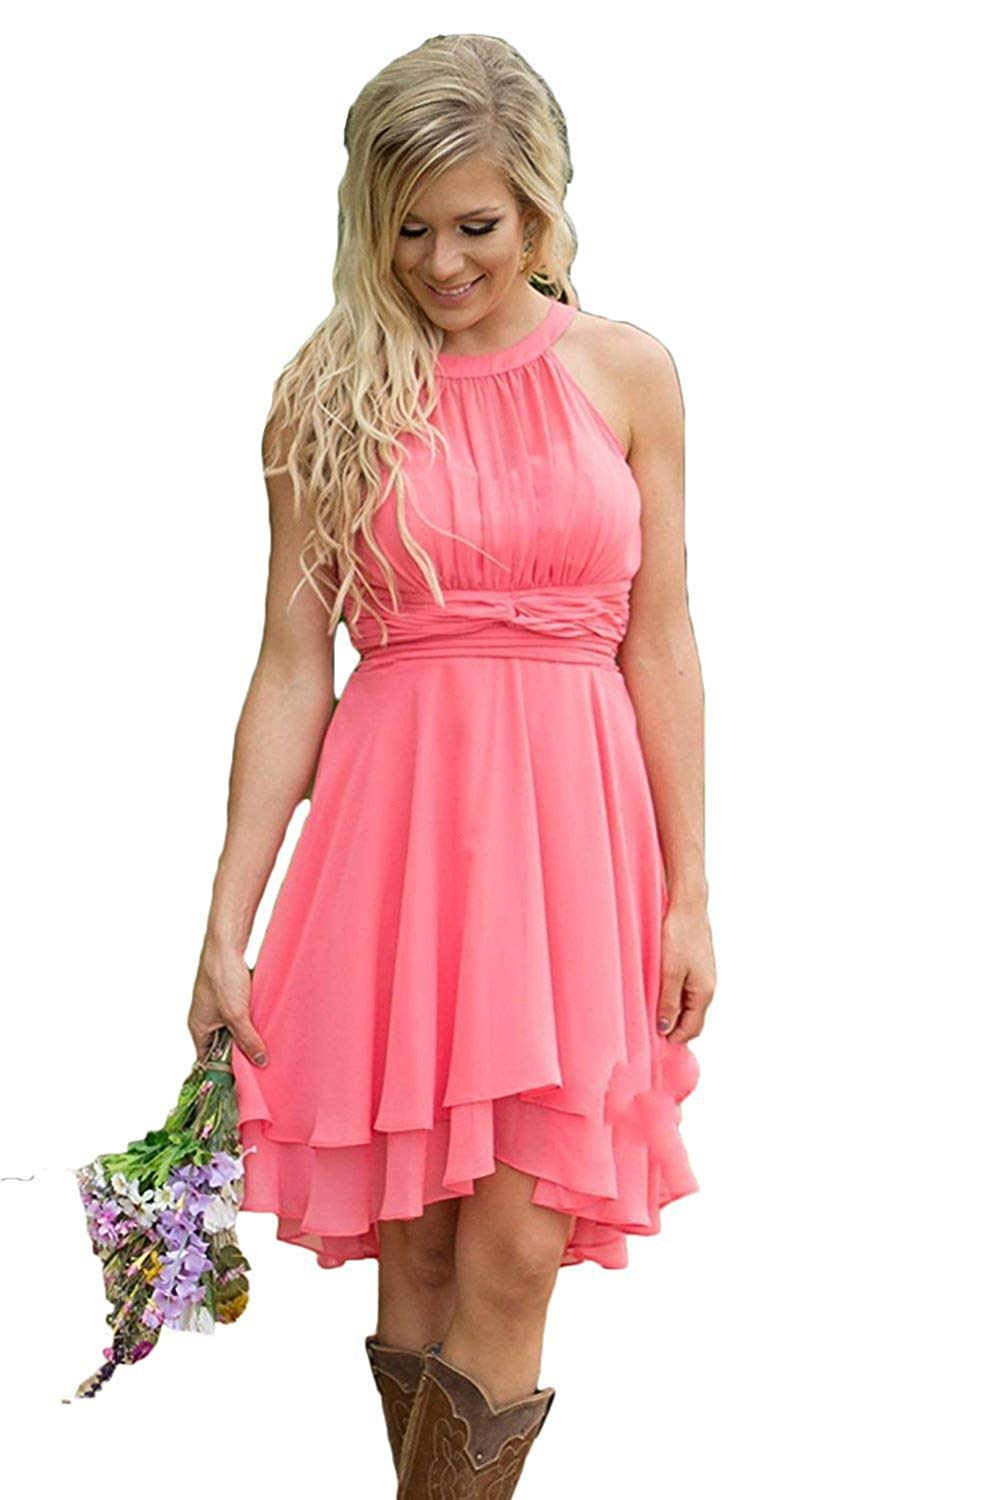 Erosebridal Short Bridesmaid Dresses Chiffon Halter Prom Dress Country Wedding Dress Coral 12